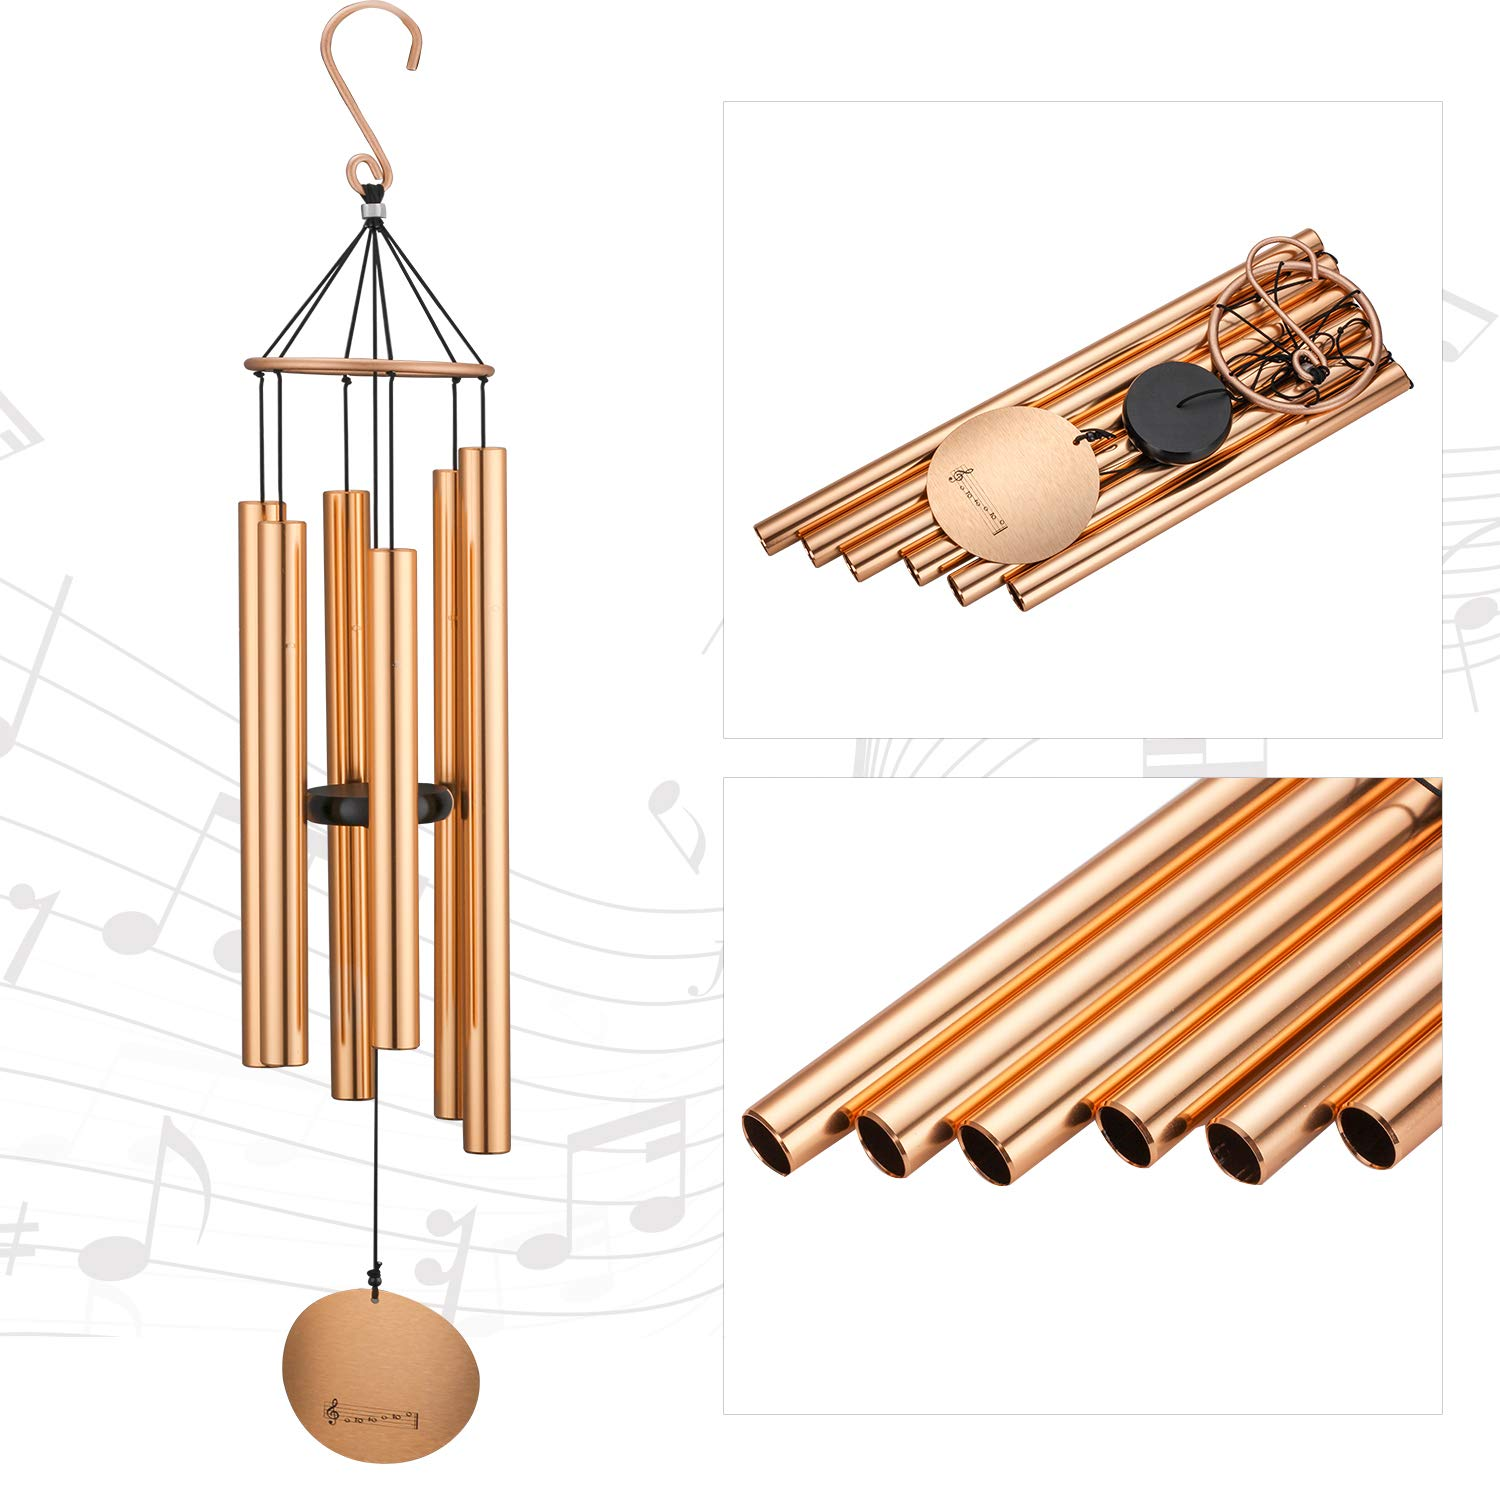 Migargle 42-inch Wind Chimes- Tuned Large Garden Outdoor Windchimes for Patio and Terrace - Best Metal Musical Windchime Outdoor and Home Decoration